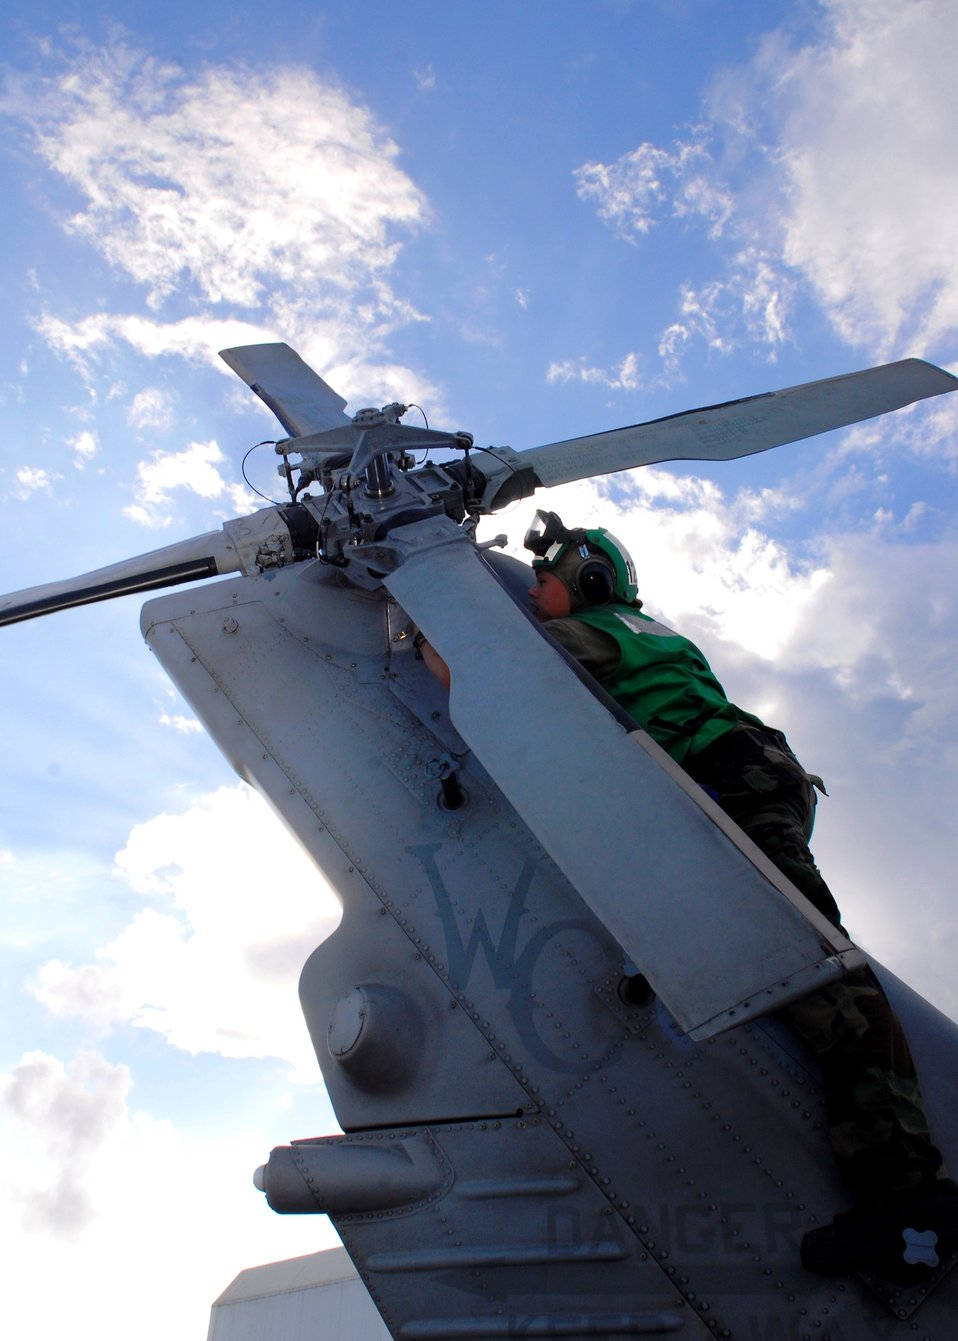 Aviation Machinist's Mate 3rd Class Sarah Rogers Checks the Oil Level in the Tail Gear Box of an MH-60S Knighthawk Helicopter